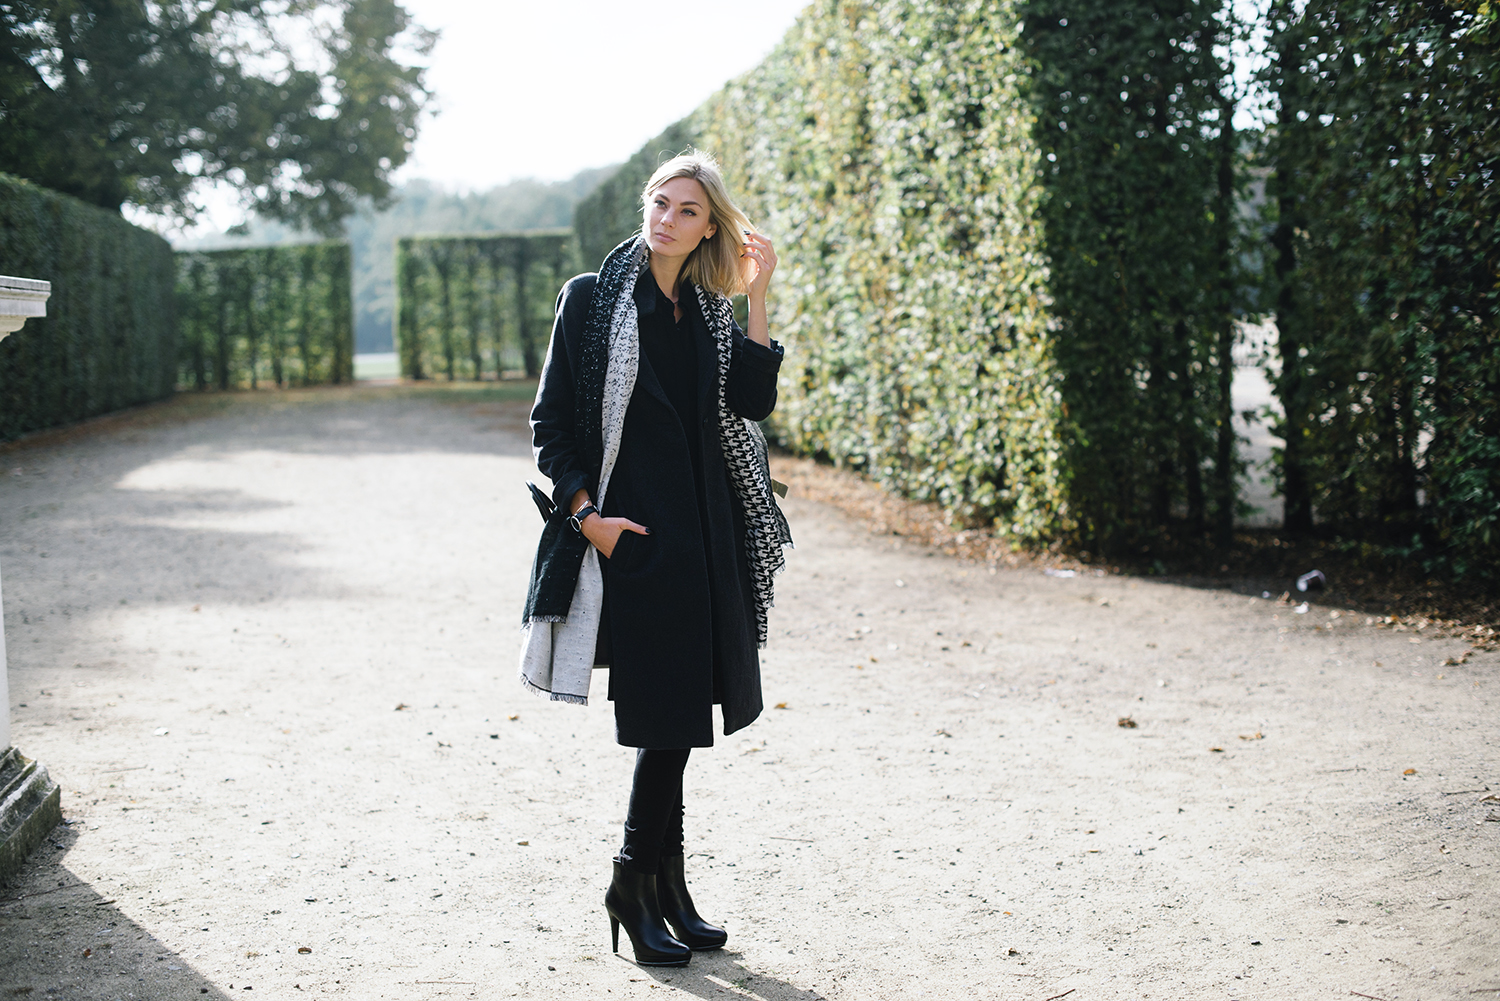 herbst outfit inspiration mit alba moda ich zeige euch drei tolle outfits. Black Bedroom Furniture Sets. Home Design Ideas